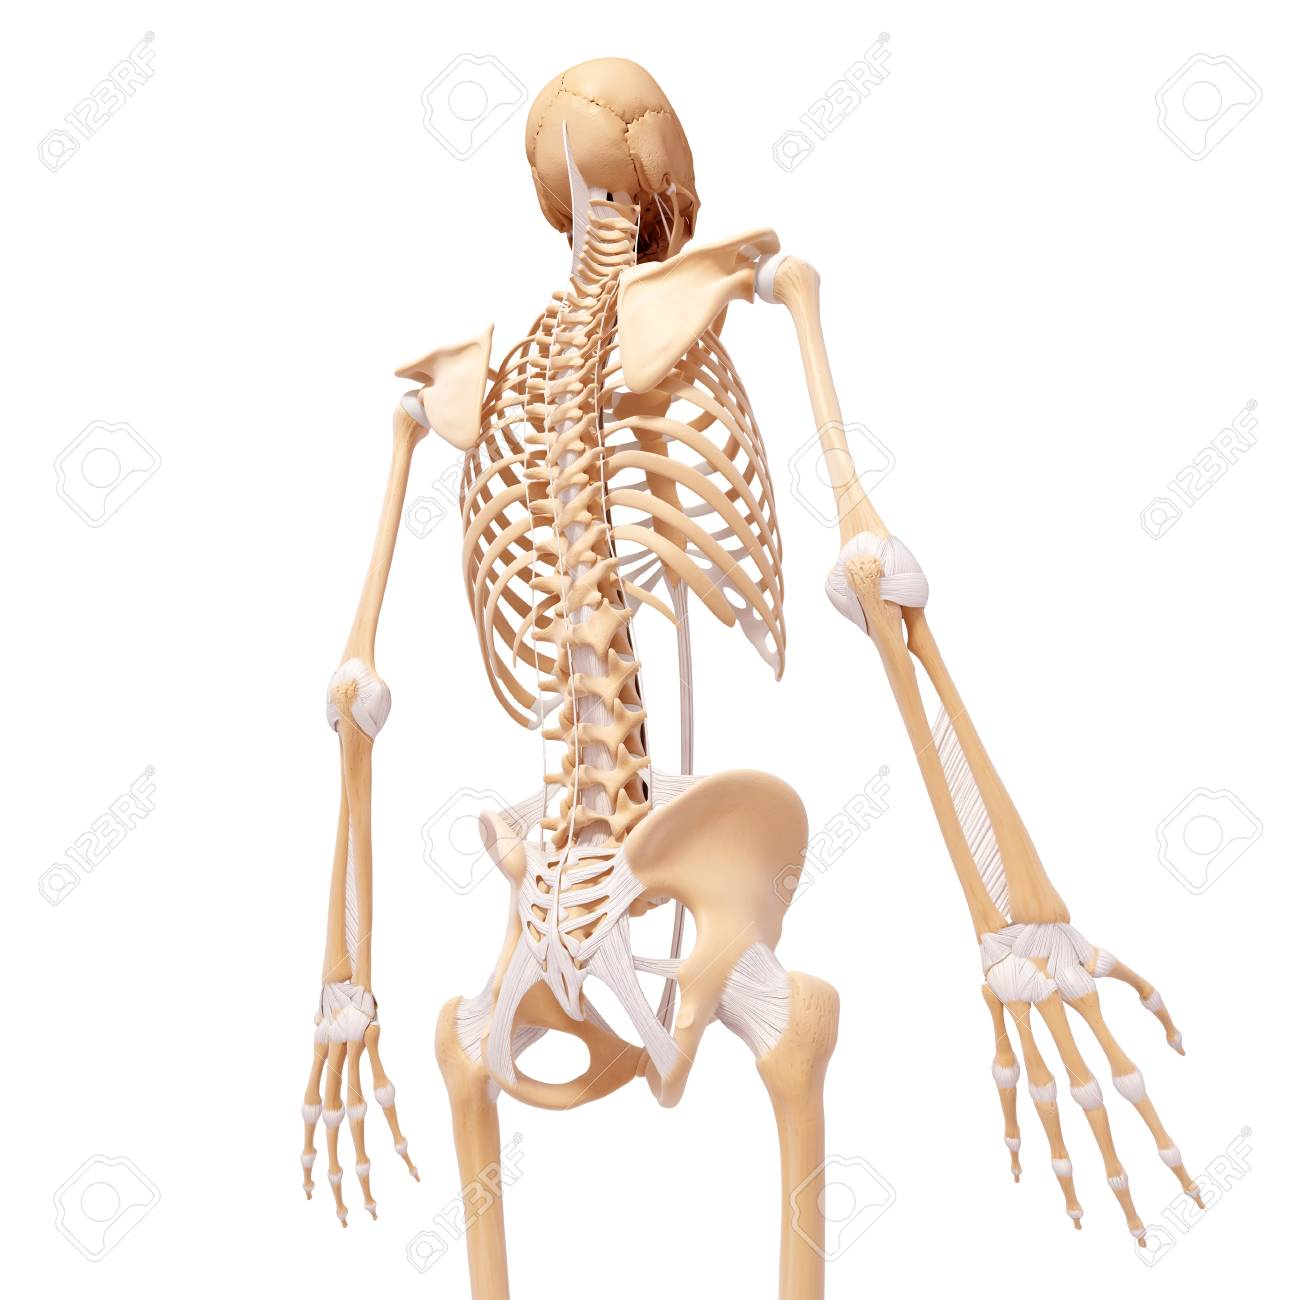 human skeleton artwork stock photo picture and royalty free image